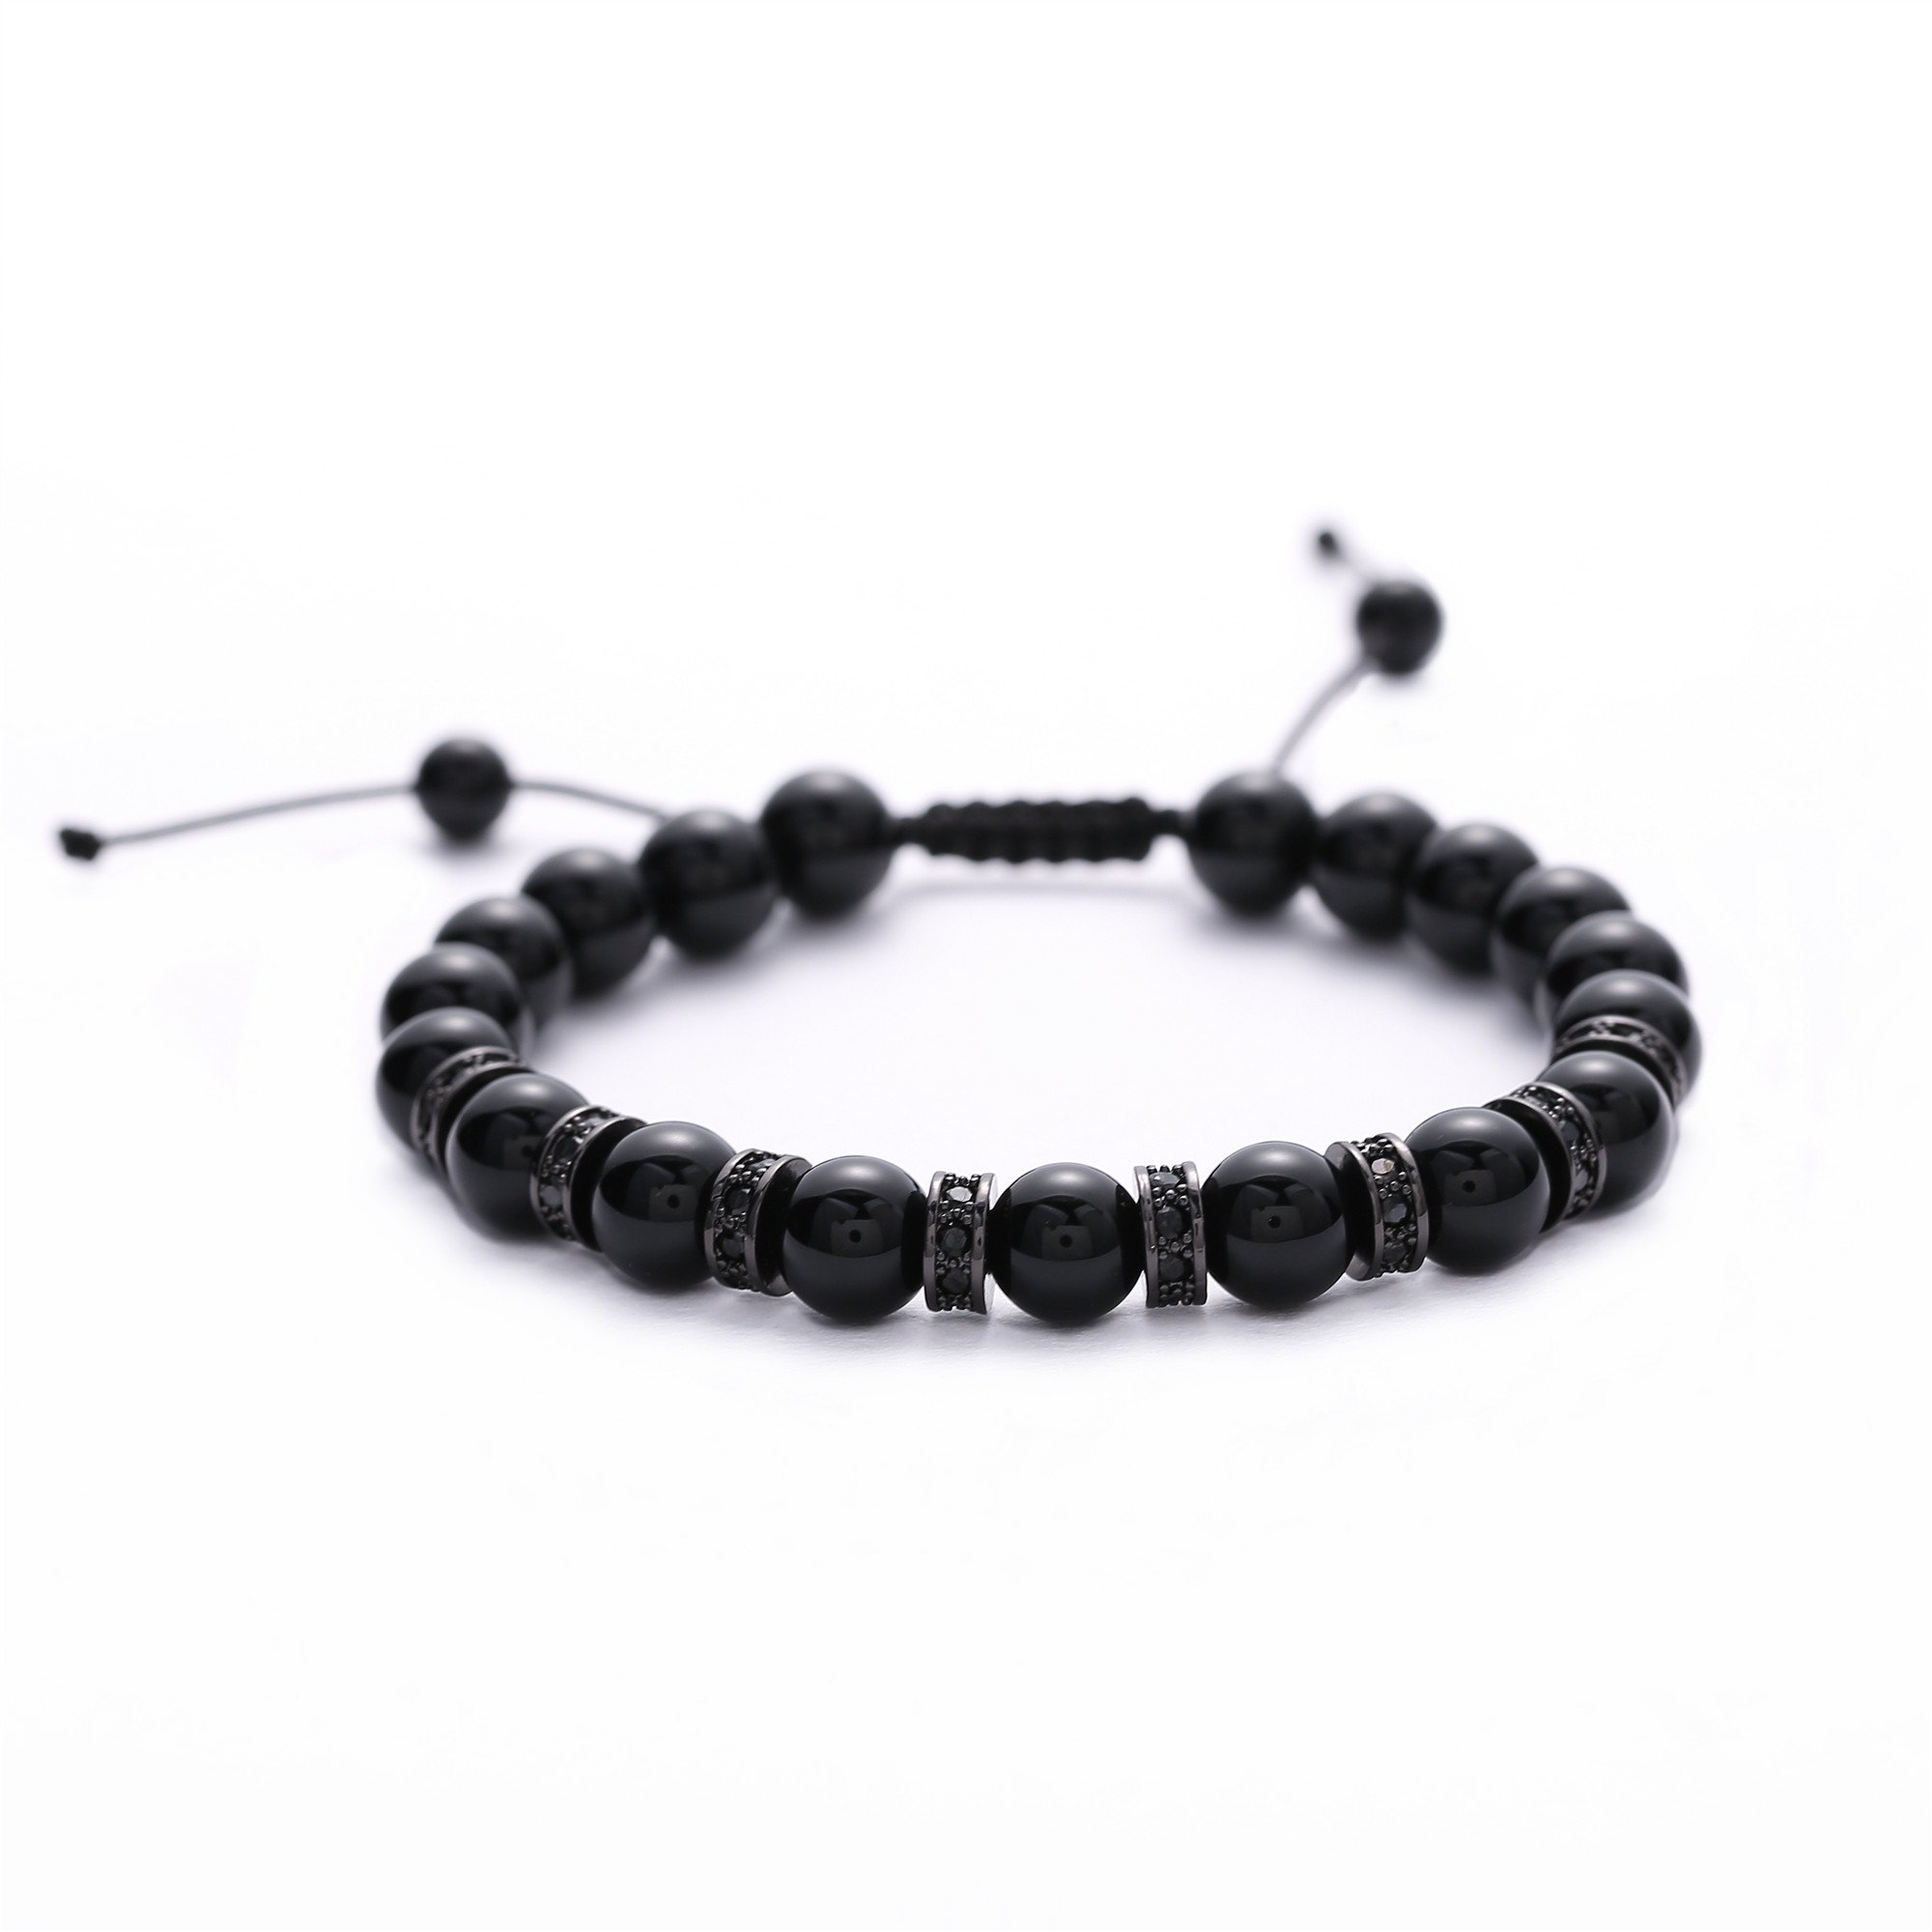 Molinuo Natural Stone Black Agate Bracelet for Men&Women 8mm Beads Braided Bangle Adjustable